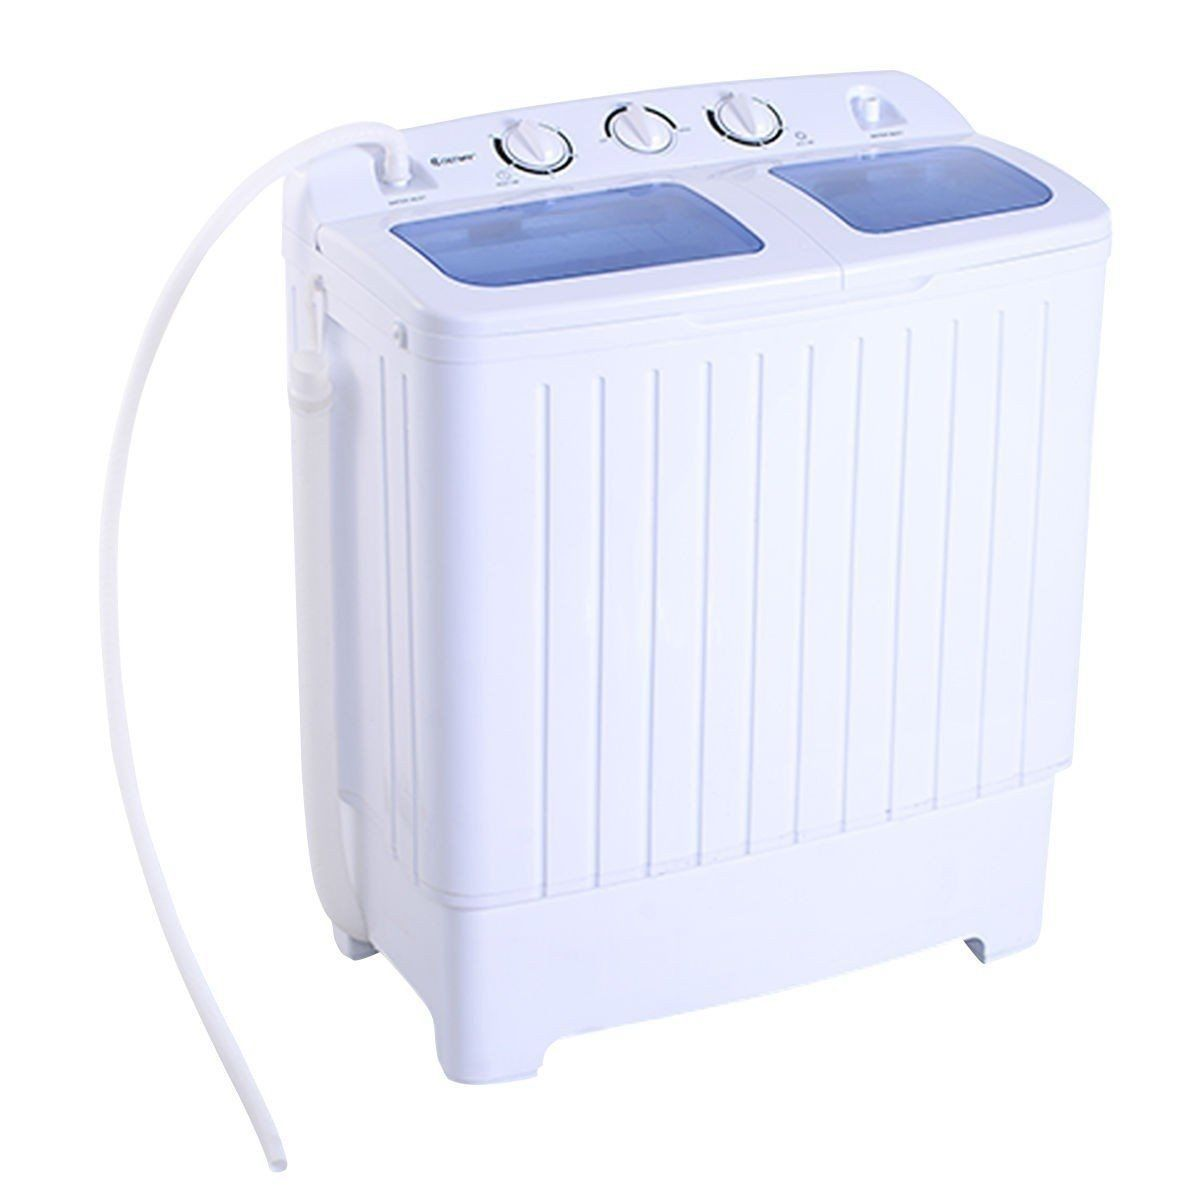 Small Clothes Dryer Portable Washing Machine Washer And Clothes Dryer Top